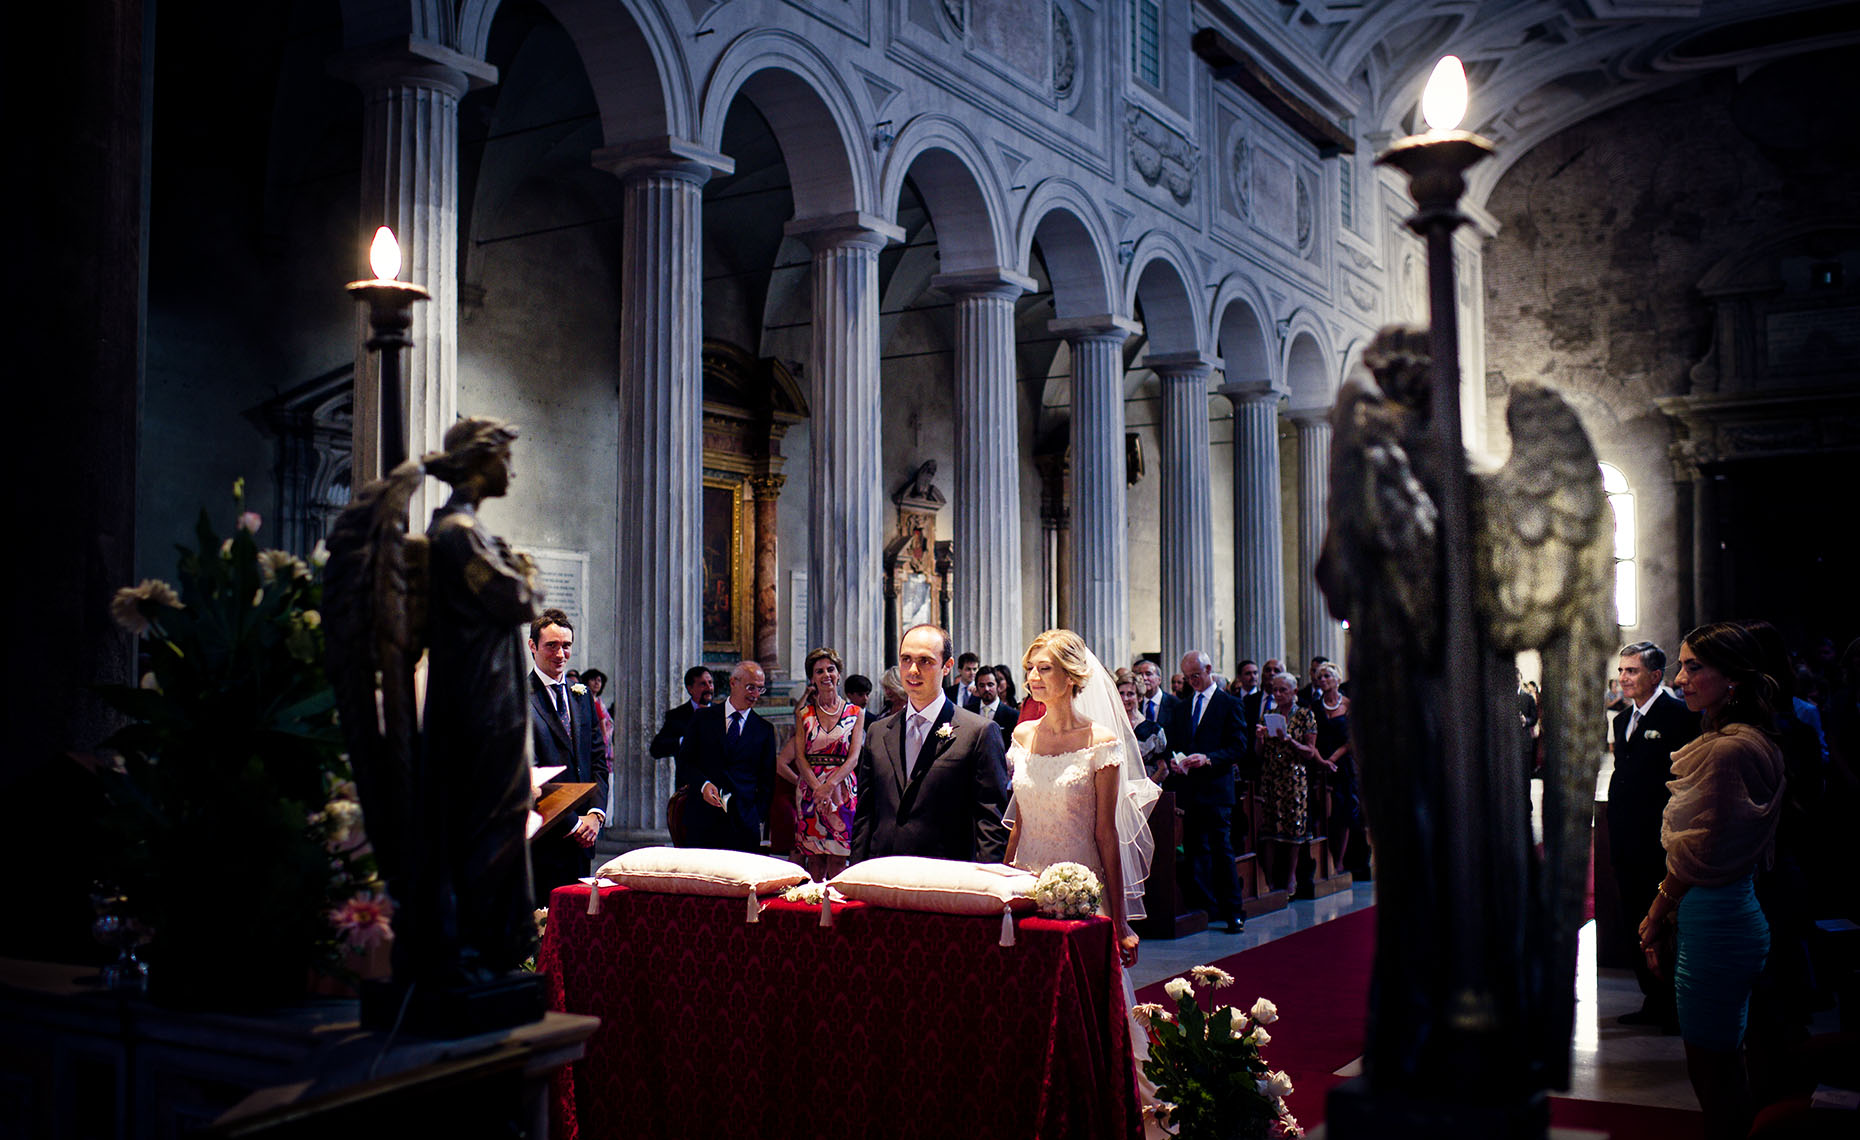 San Pietro in Vincoli wedding church Rome